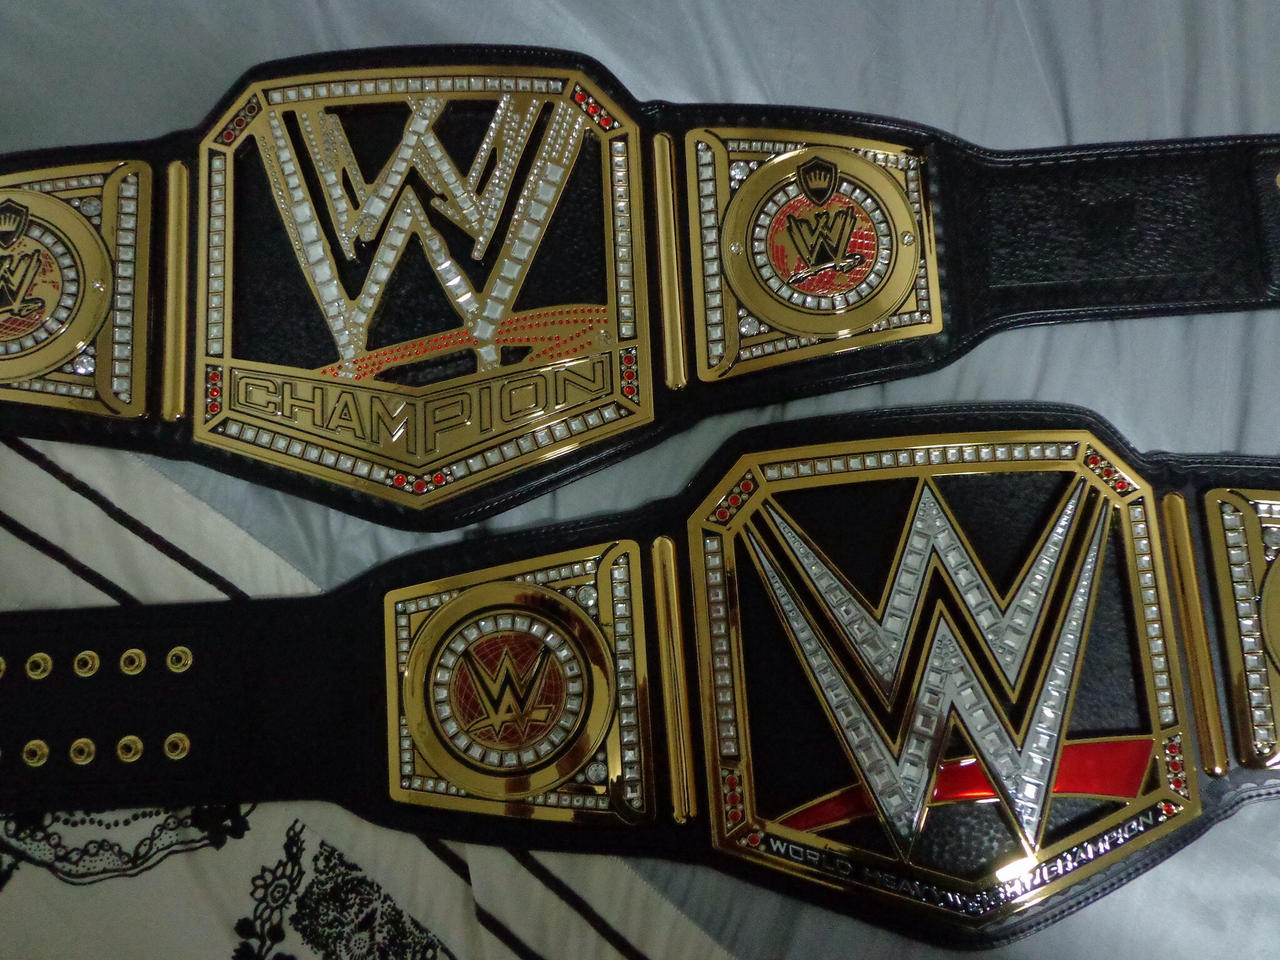 WWE CHAMPIONSHIP AND WWE WORLD HEAVYWEIGHT CHAMPIO by imranbecks